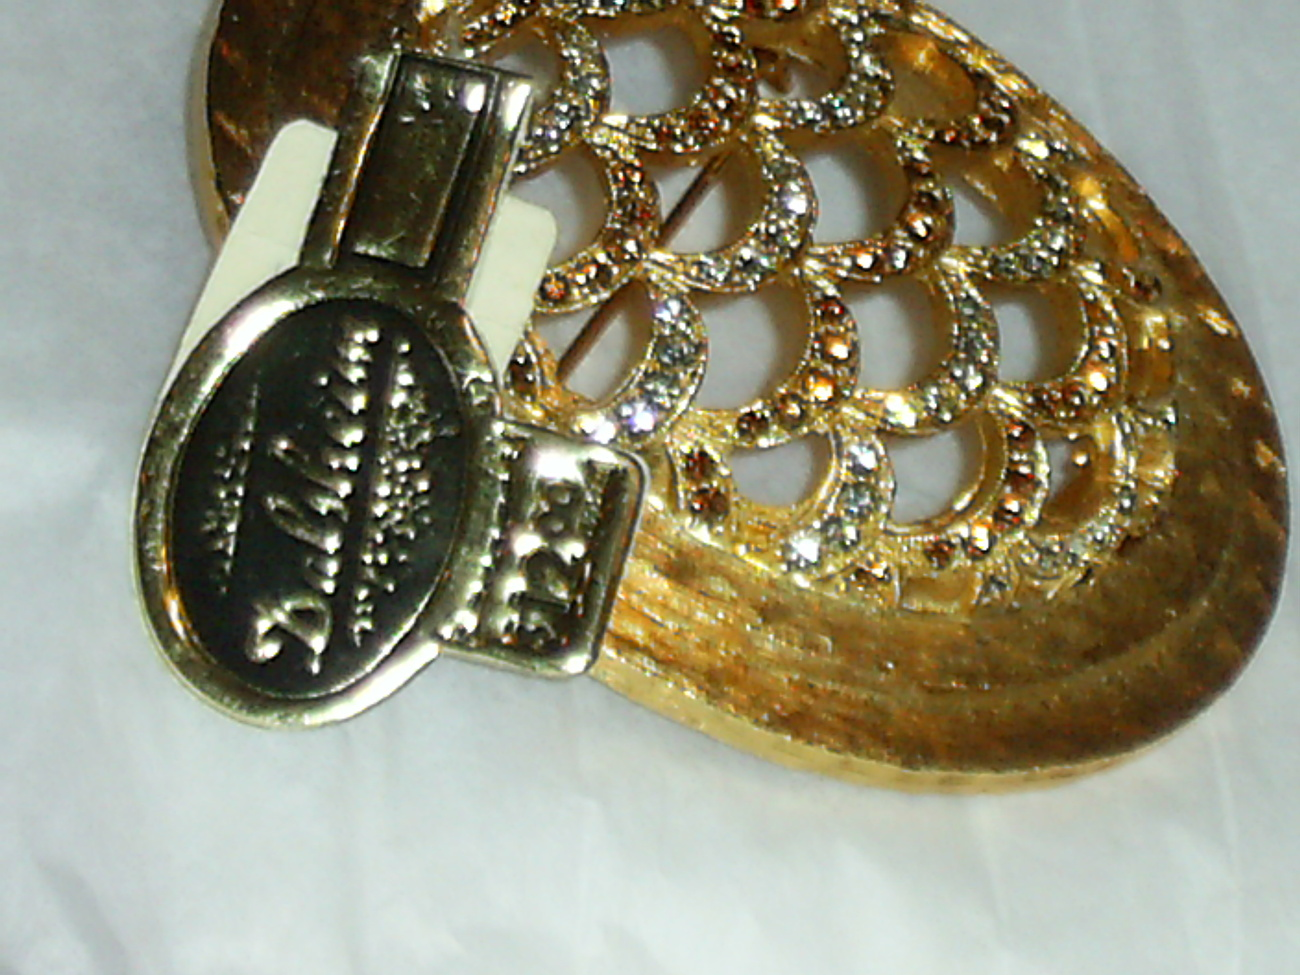 Rare Dalsheim Brooch with Stick and Hang Tag - Rhinestones Gold Tone Open Work